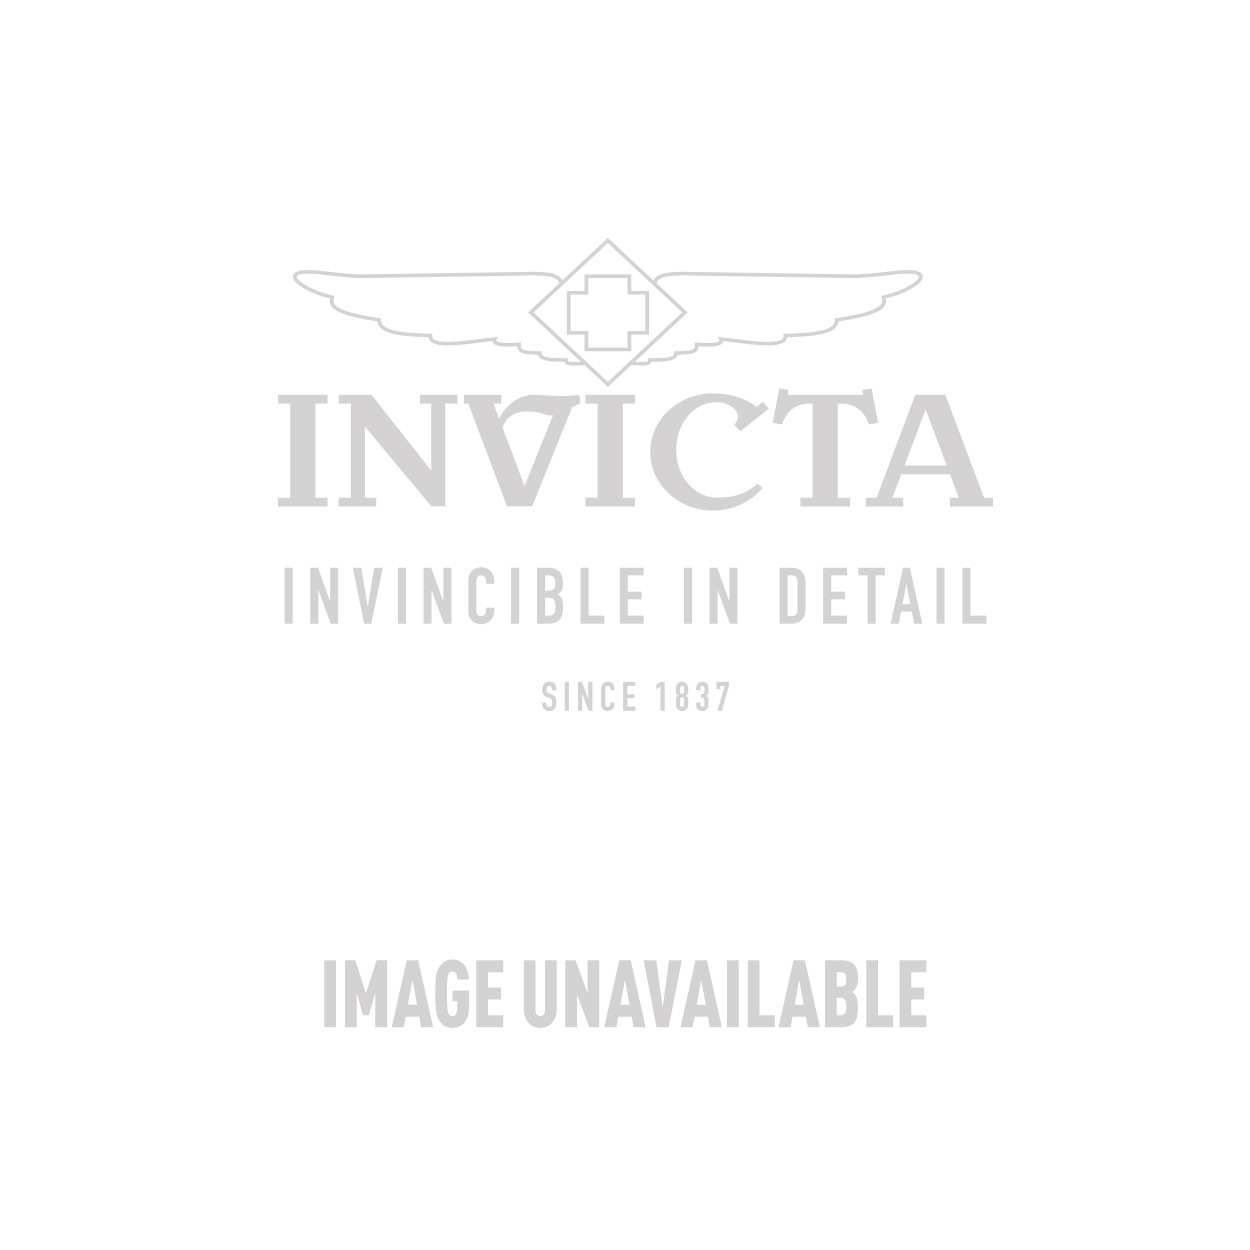 Invicta Excursion  Quartz Watch - Rose Gold, Gunmetal, Stone Distressed case with Gunmetal tone Stainless Steel band - Model 17868